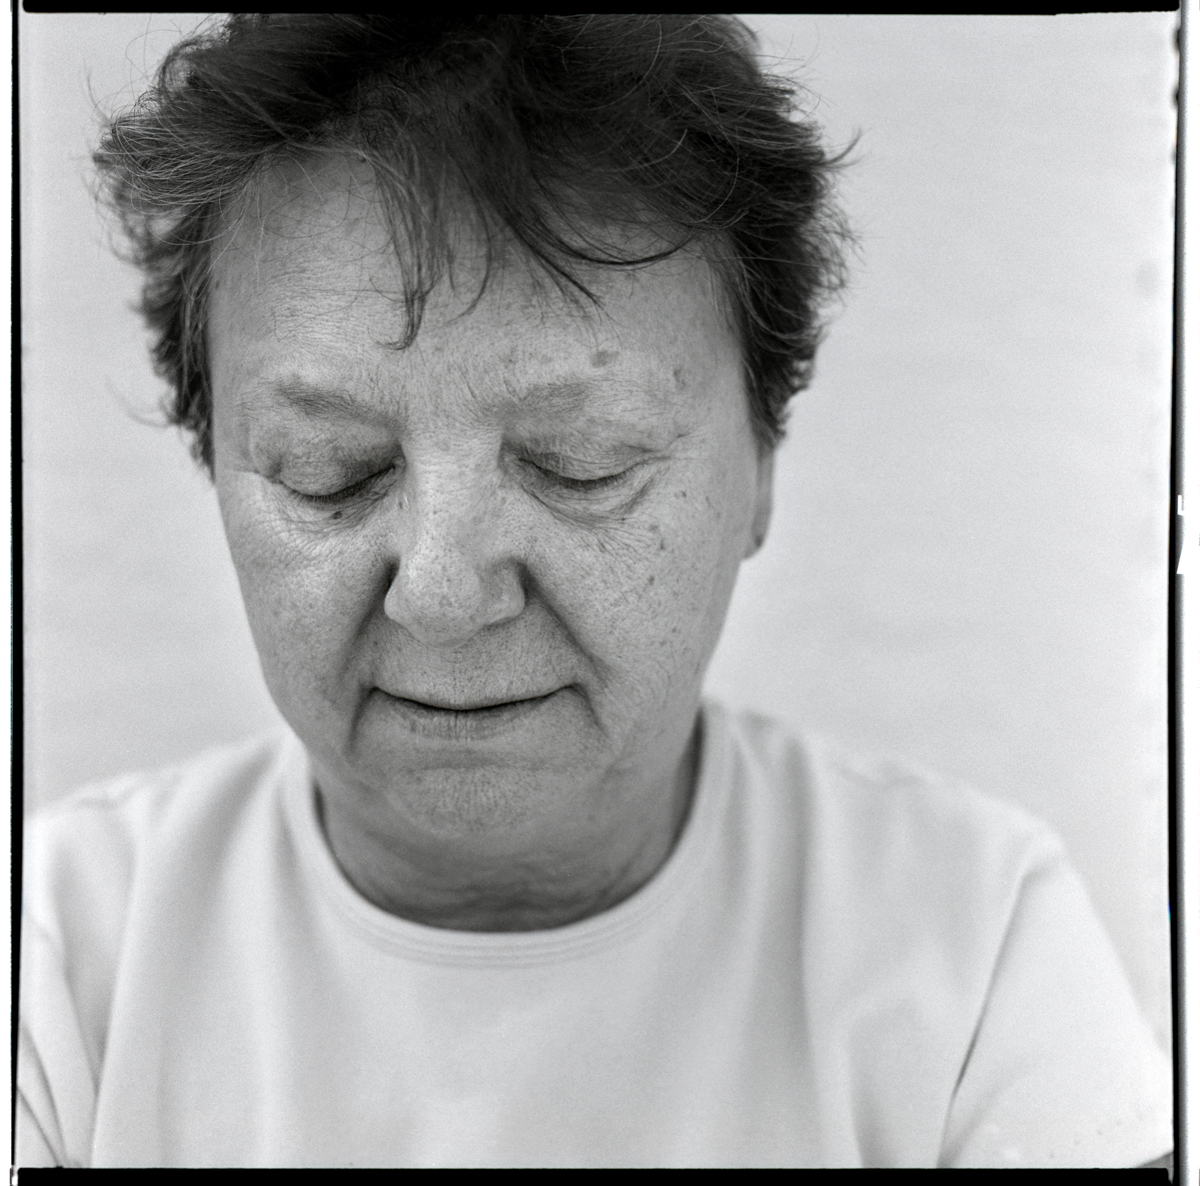 "My First Cousin, Dolores Oliveri, Ft. Lauderdale, FL 2011. - from the series ""Staring"""